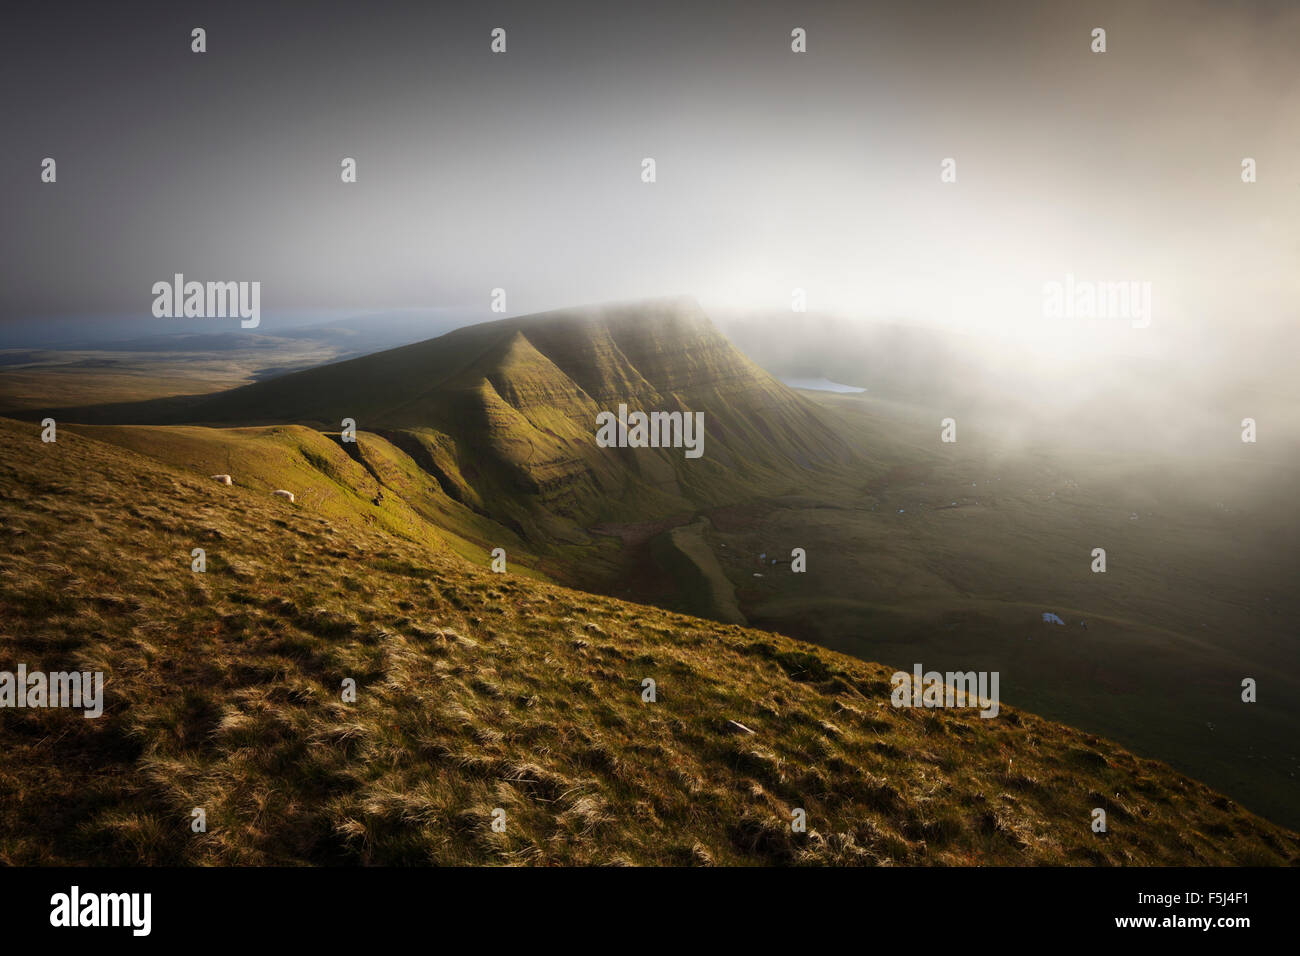 Mist rolling in over Picws Du. The Black Mountain. Brecon Beacons National Park. Carmarthenshire. Wales. UK. - Stock Image